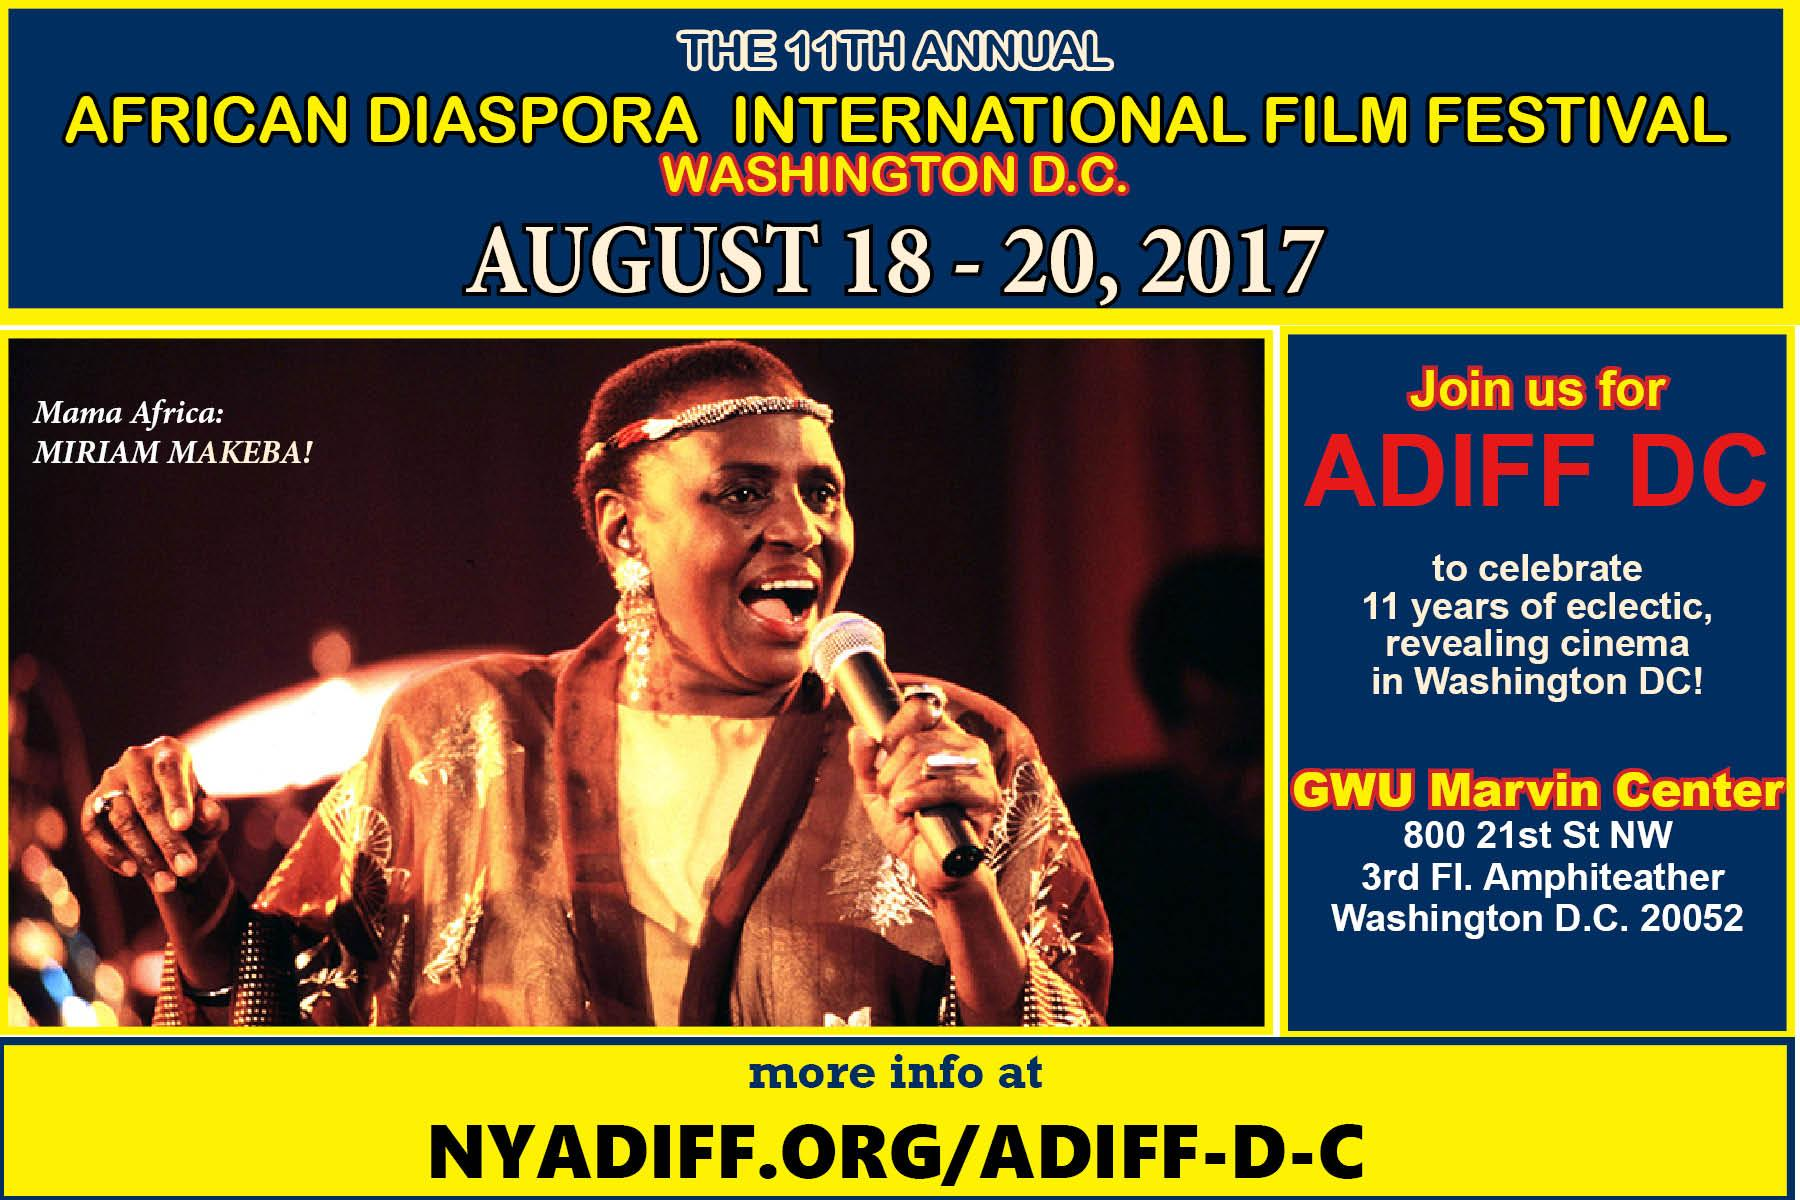 ADIFF WASHINGTON DC 2017